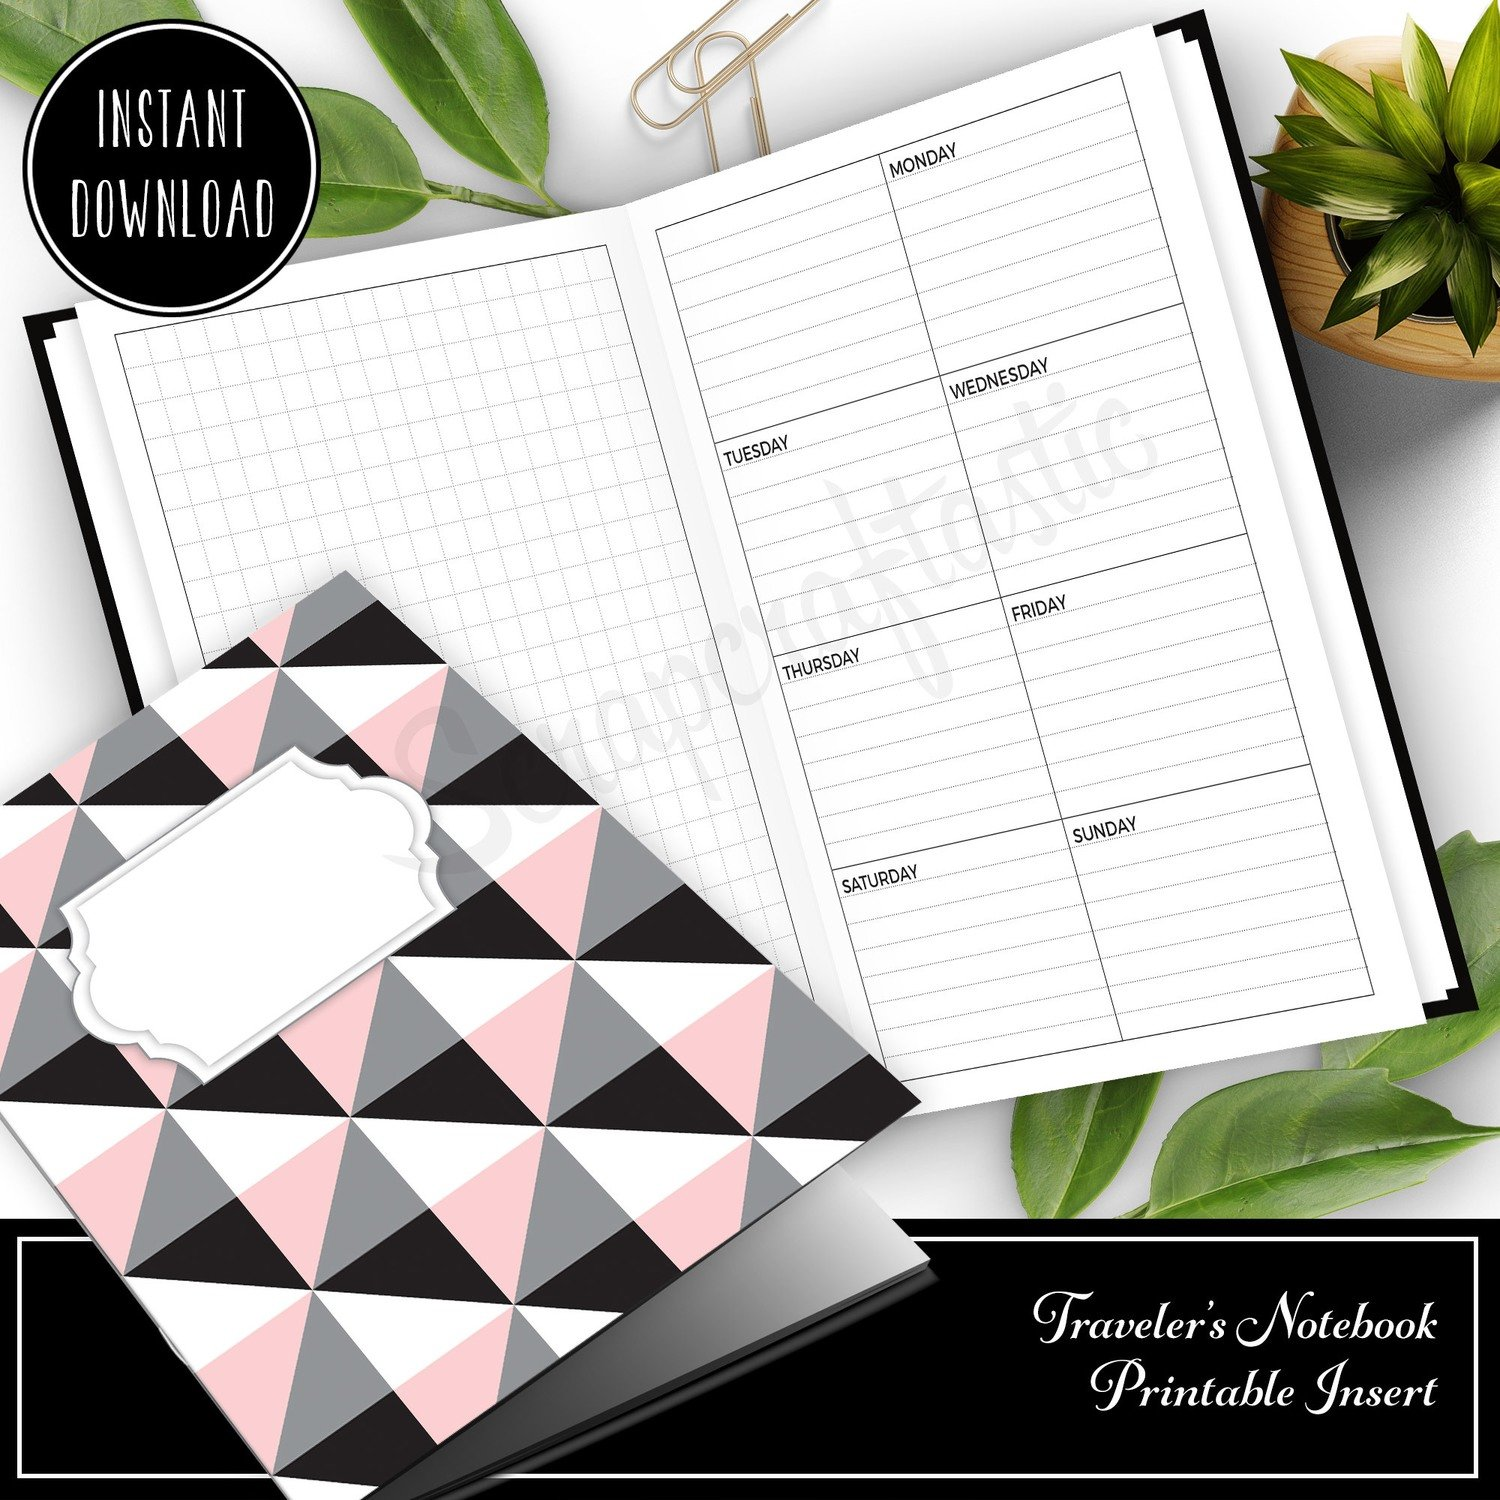 STANDARD TN - Grid and Boxed Lined Undated Weekly Traveler's Notebook Printable Planner Insert